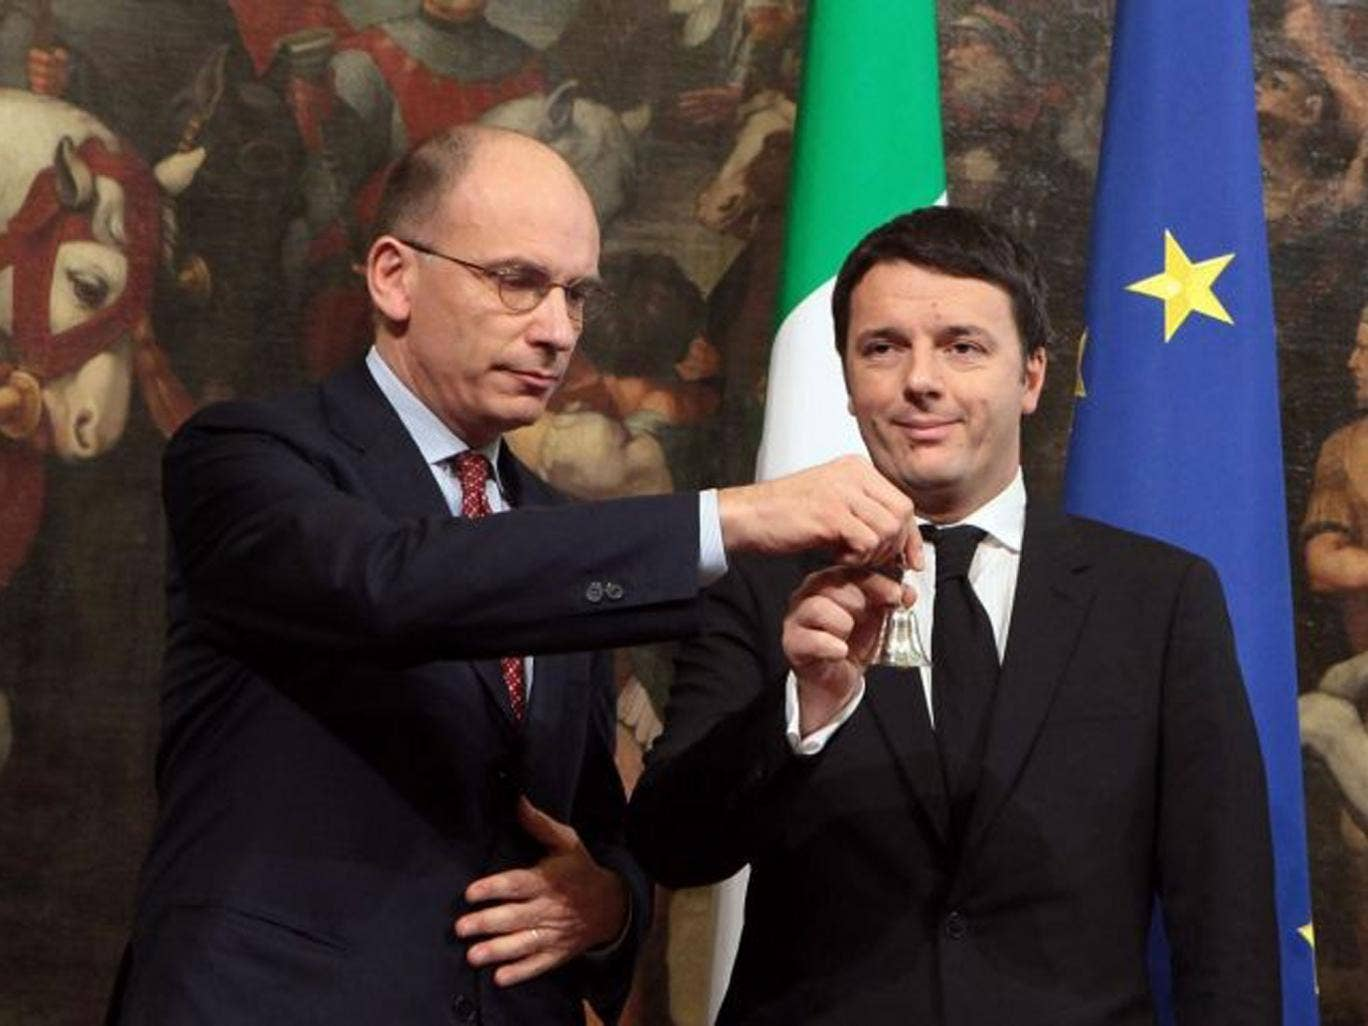 Matteo Renzi (right), with outgoing PM Enrico Letta, at the handover ceremony in Rome yesterday